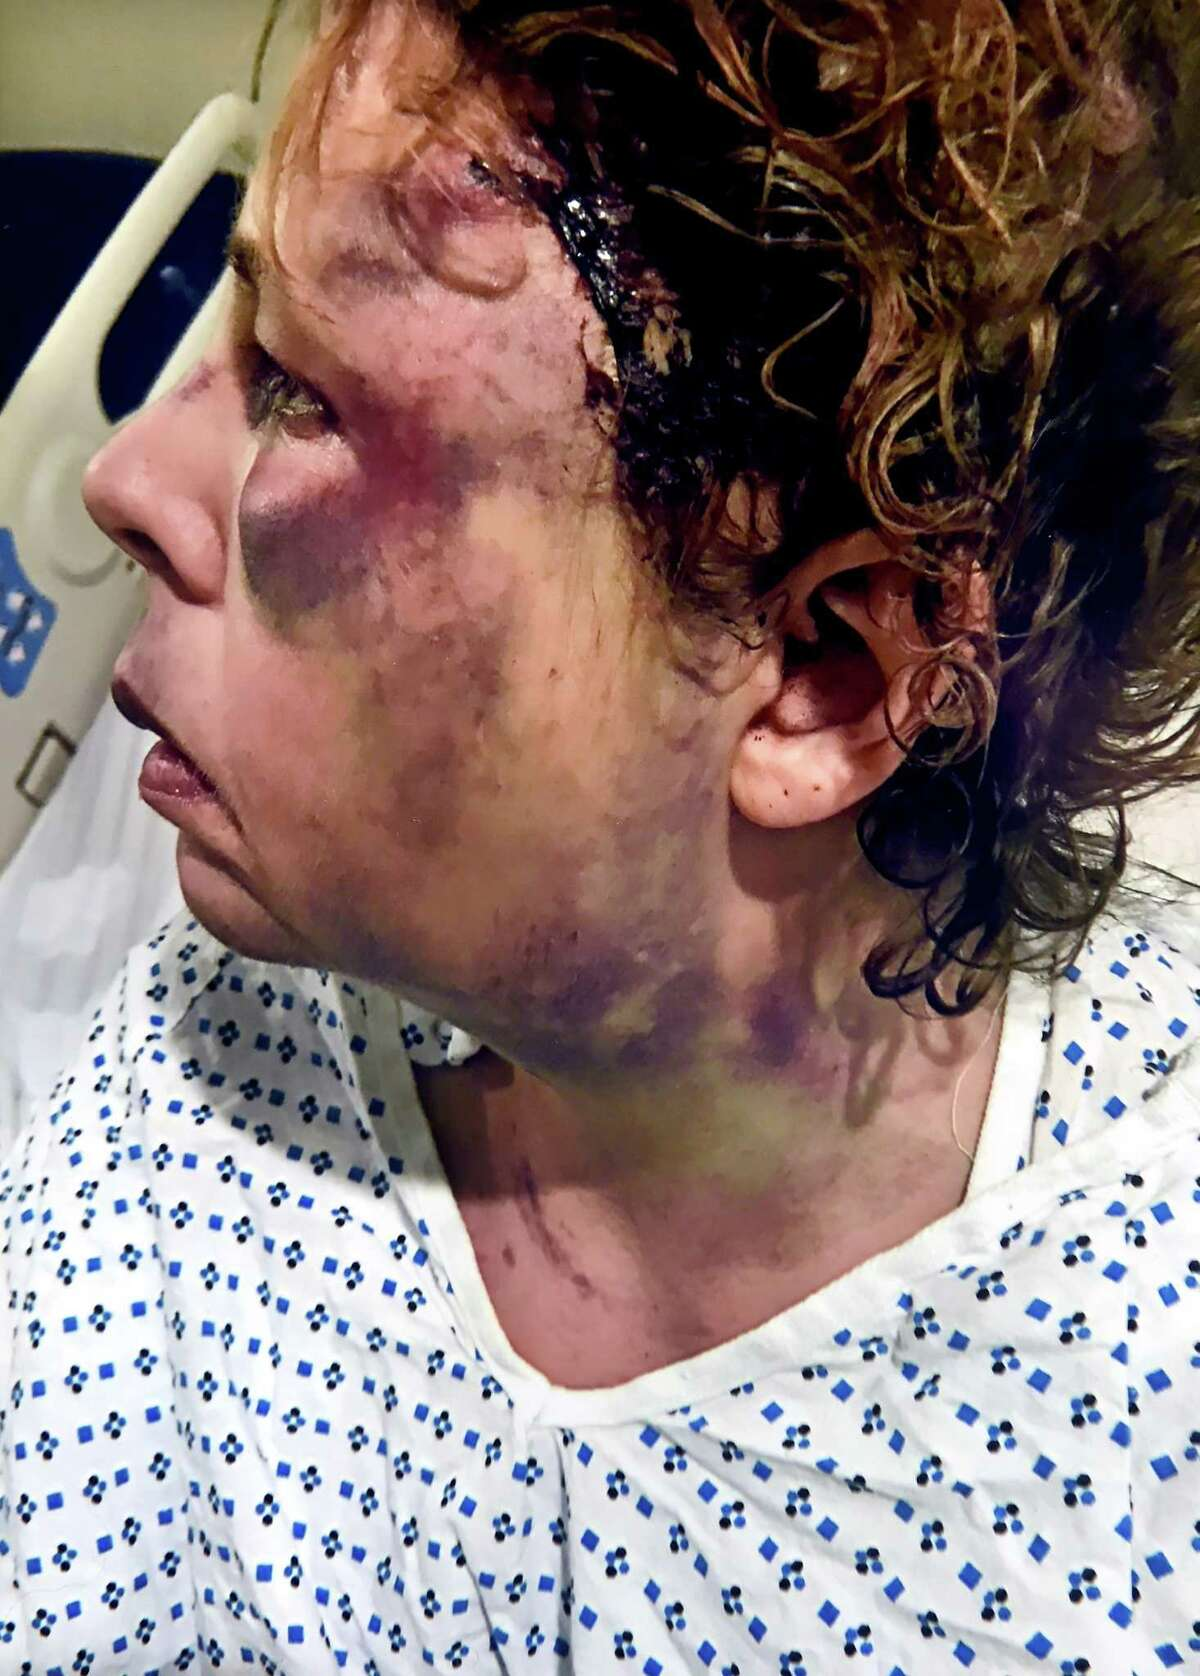 Photograph of Lori Wierzbicki after she was beaten in her home at the at the Milford Housing Authority's apartments on Jepson Drive in Milford in March 2019.